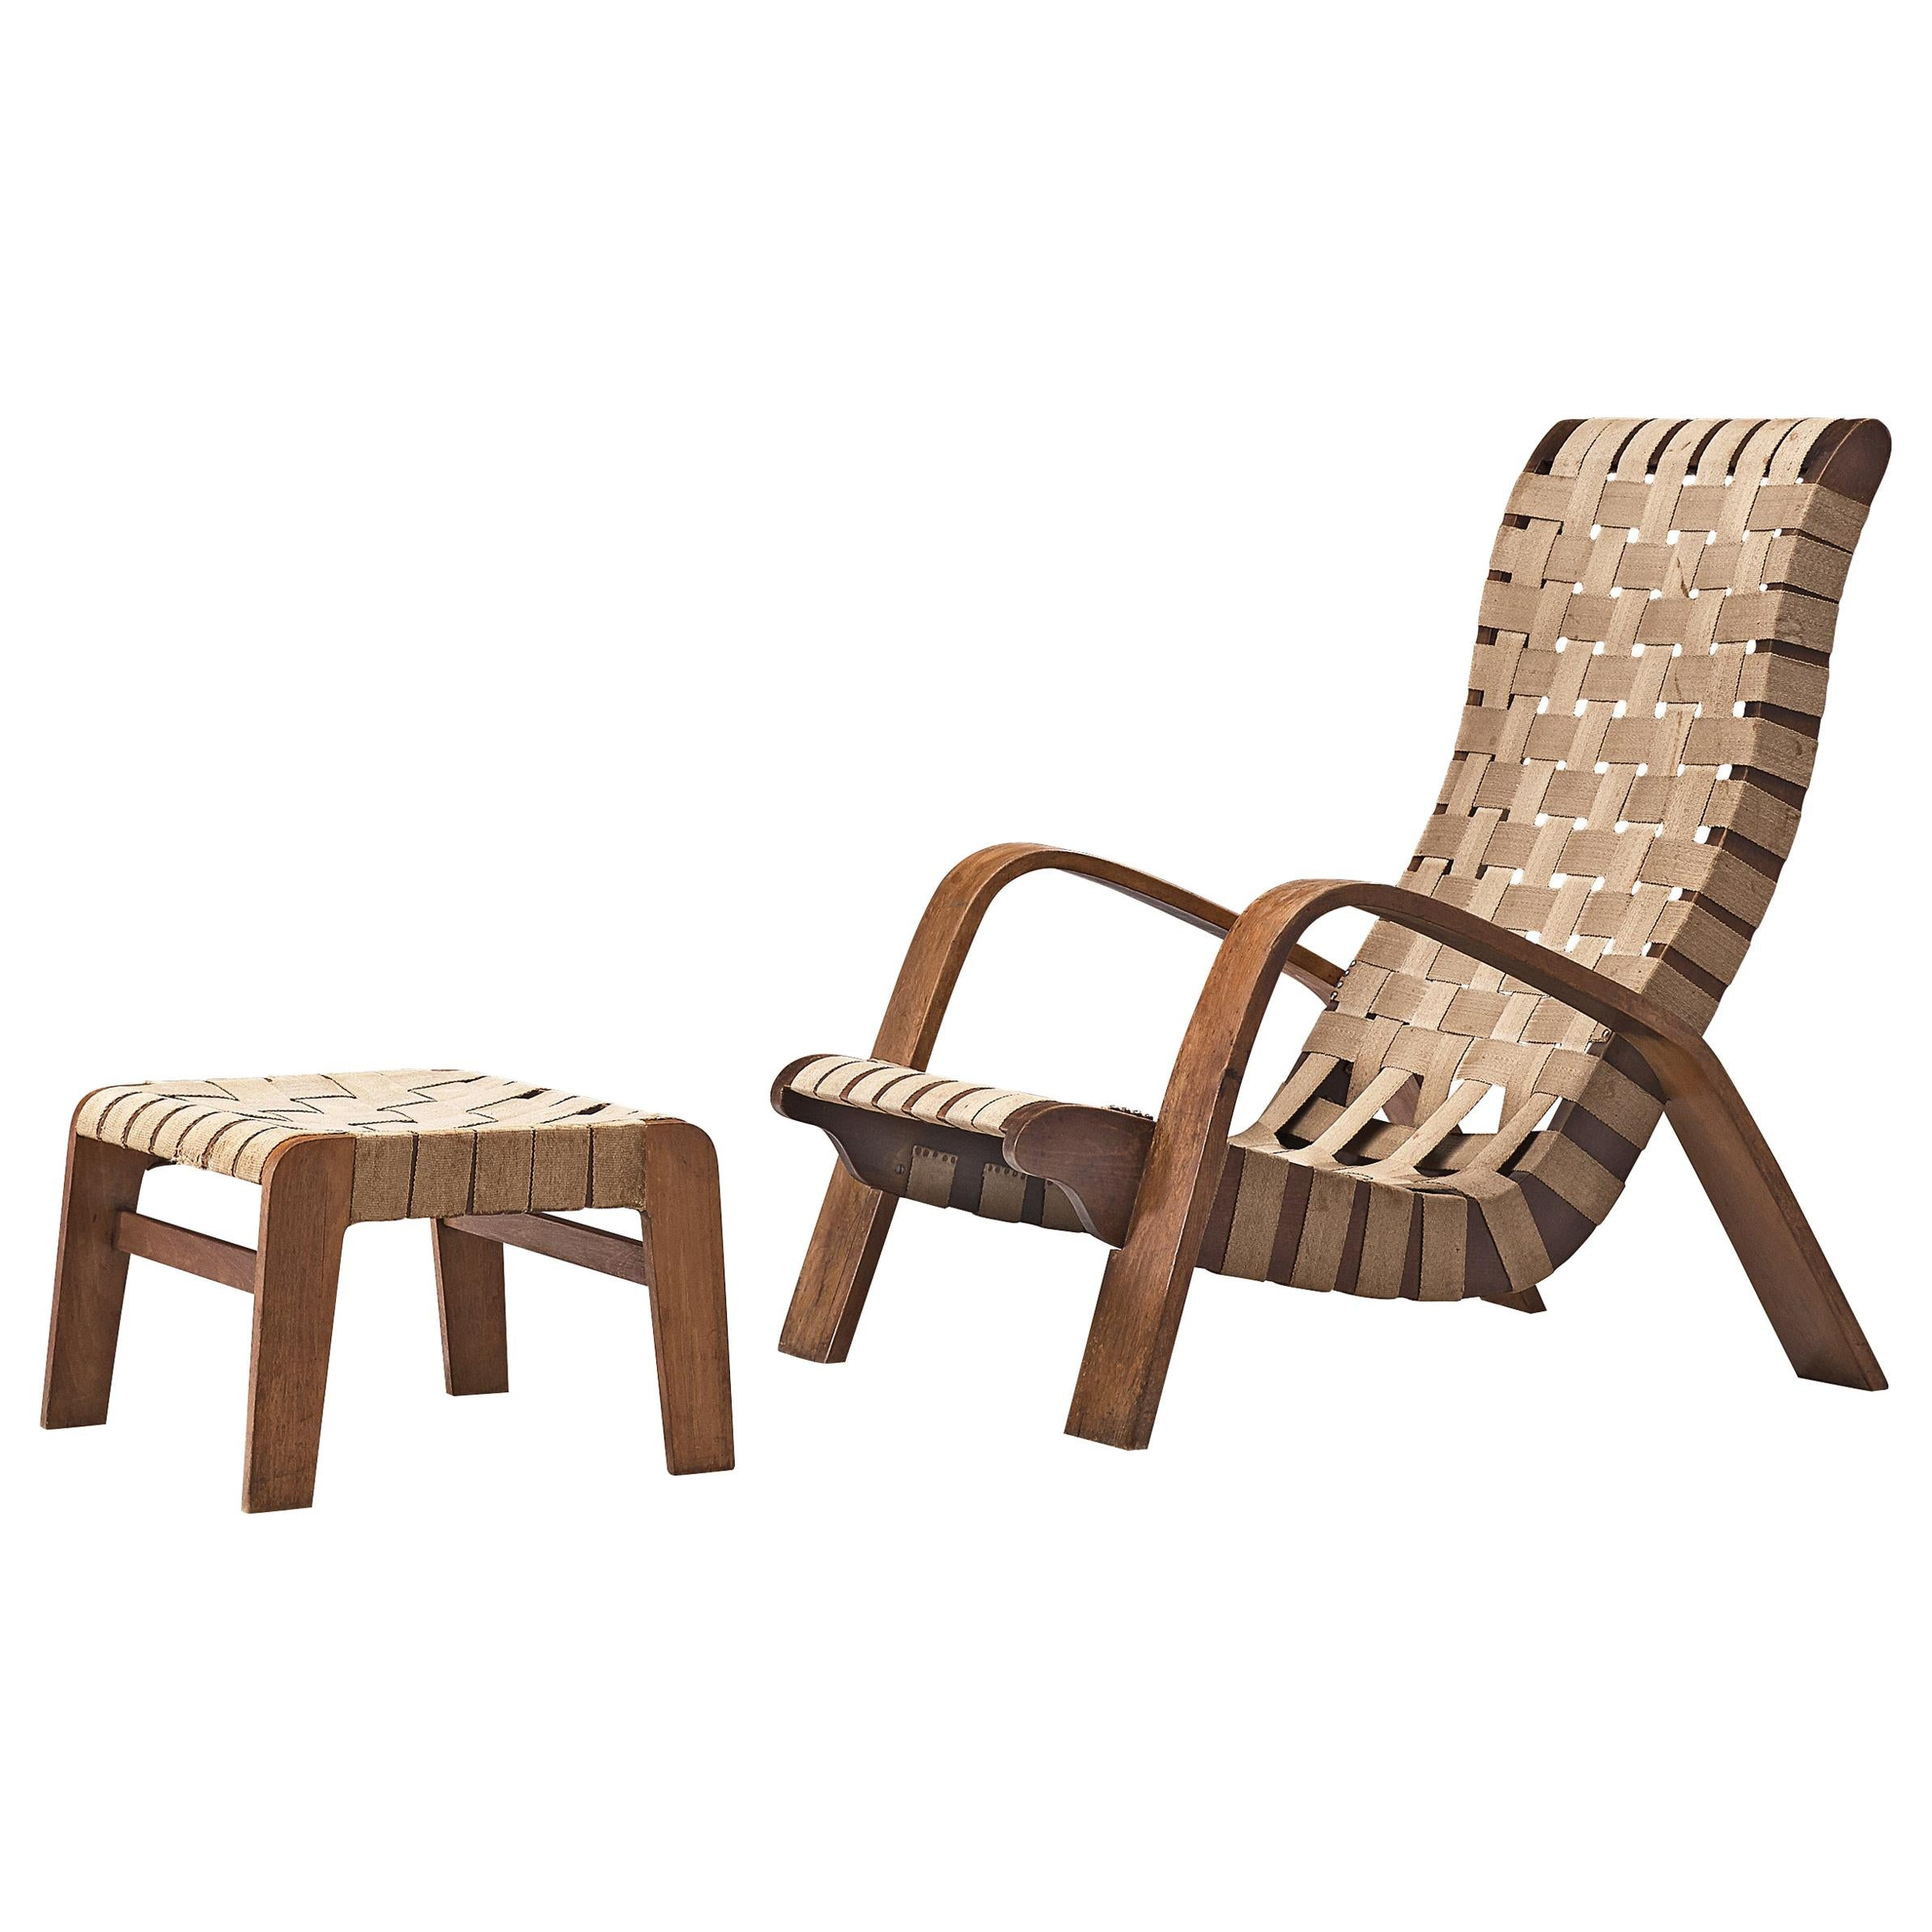 Sculptural Lounge Chair with Ottoman